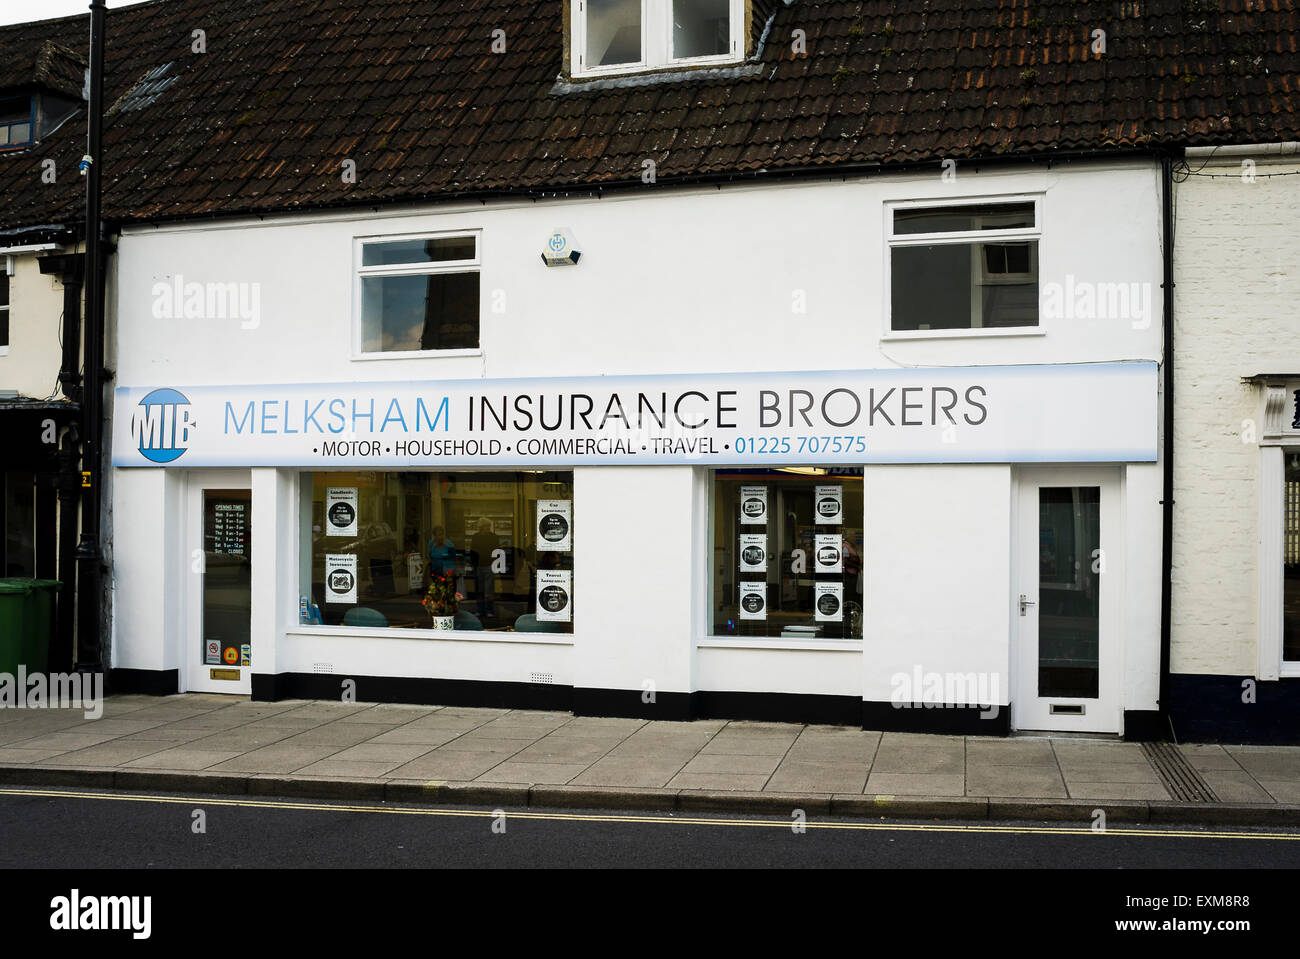 Melksham Insurance Brokers premises in Melksham UK - Stock Image